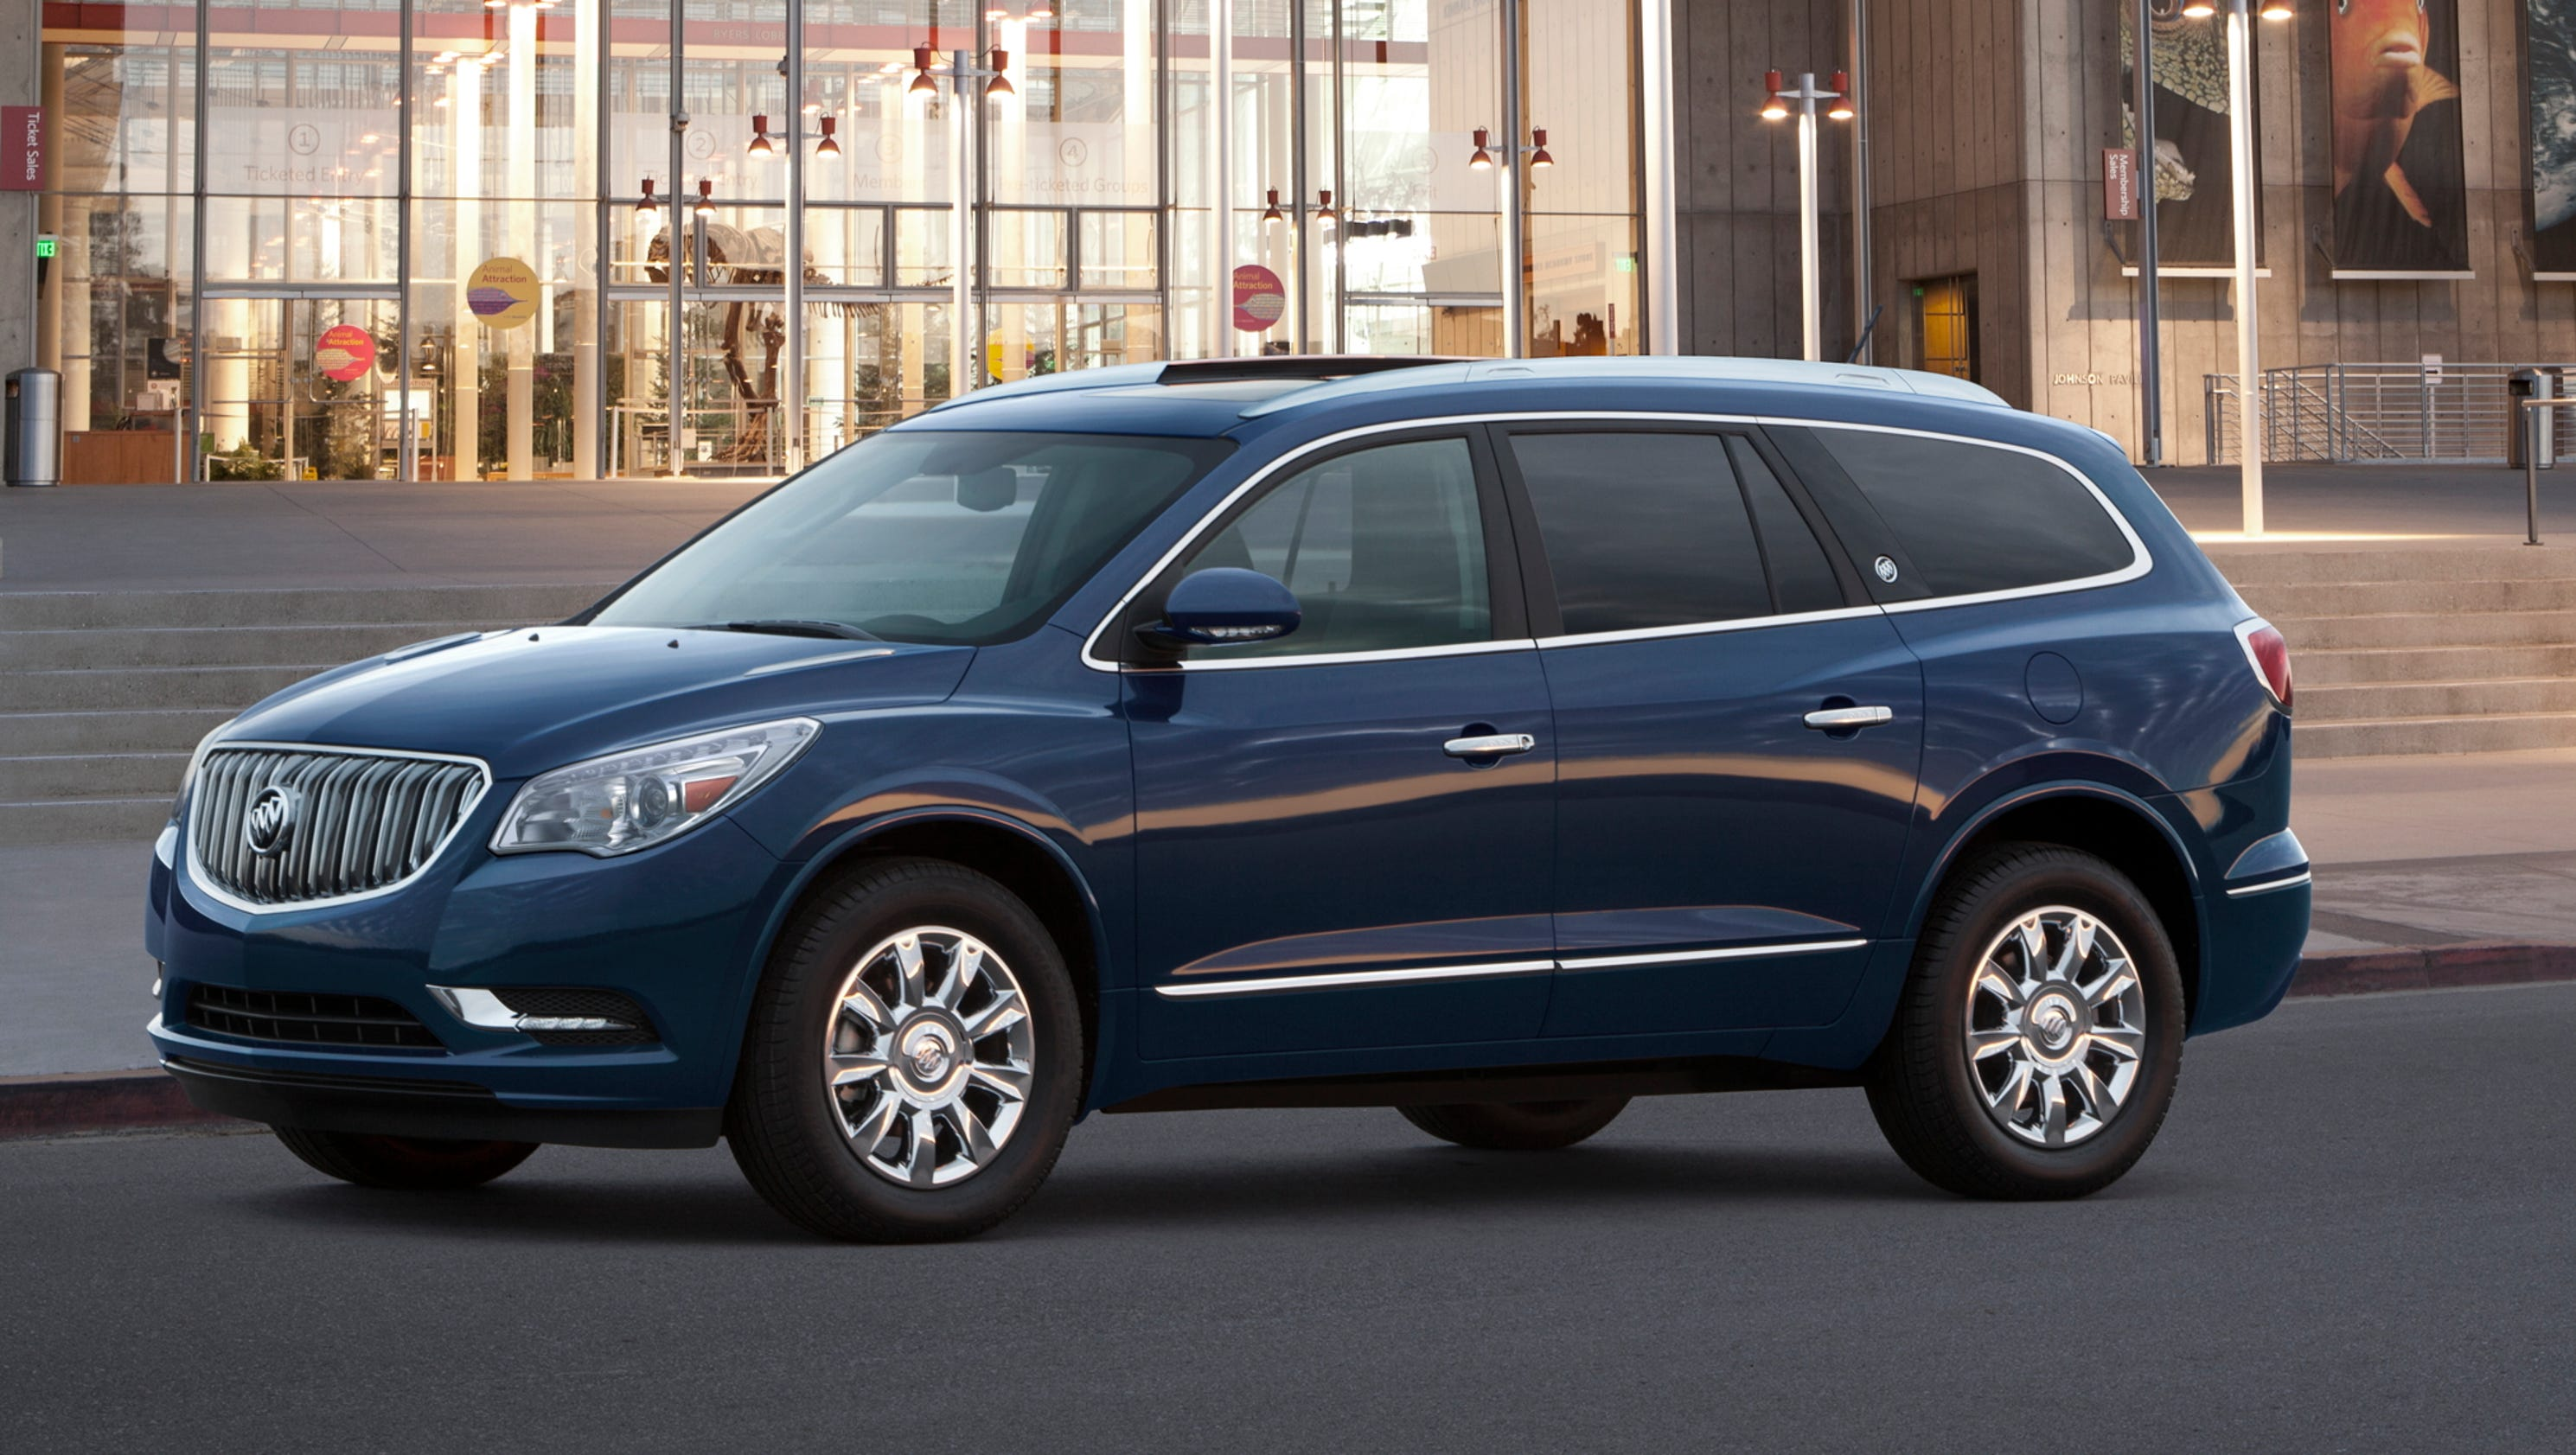 sale in on photo for new sudbury vehiclesearchresults buick vehicles envision vehicle